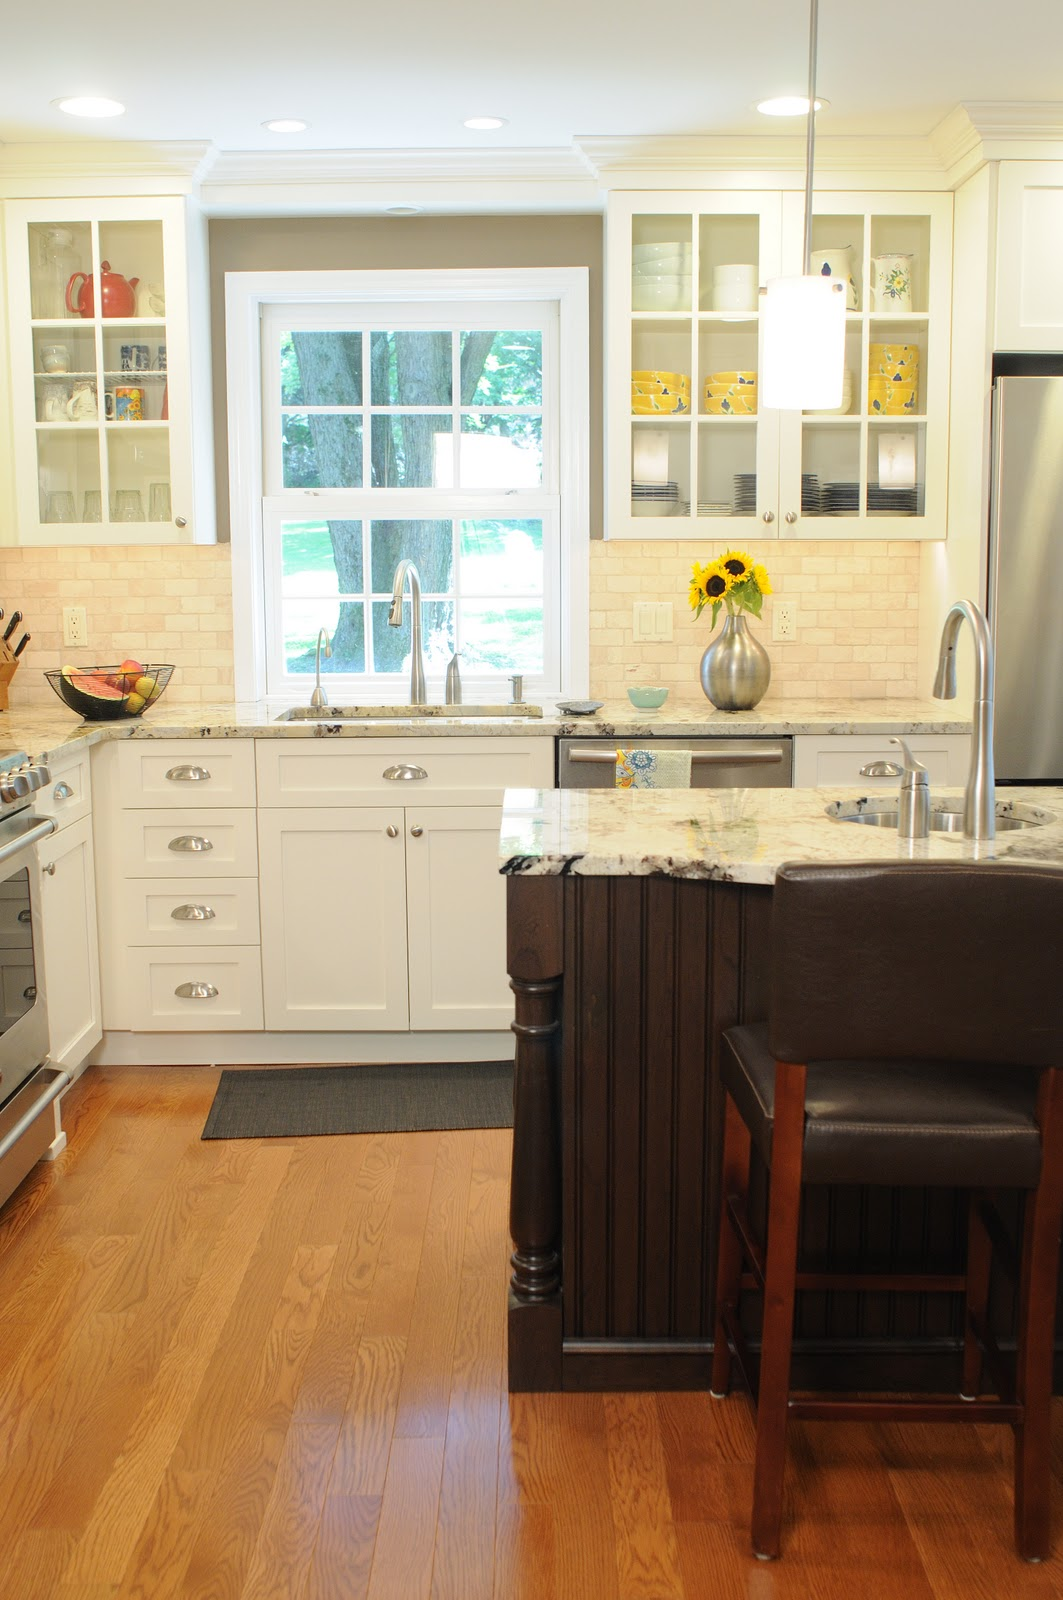 Clean Crisp Kitchen Redo Becomes The Heart Of The Home Design